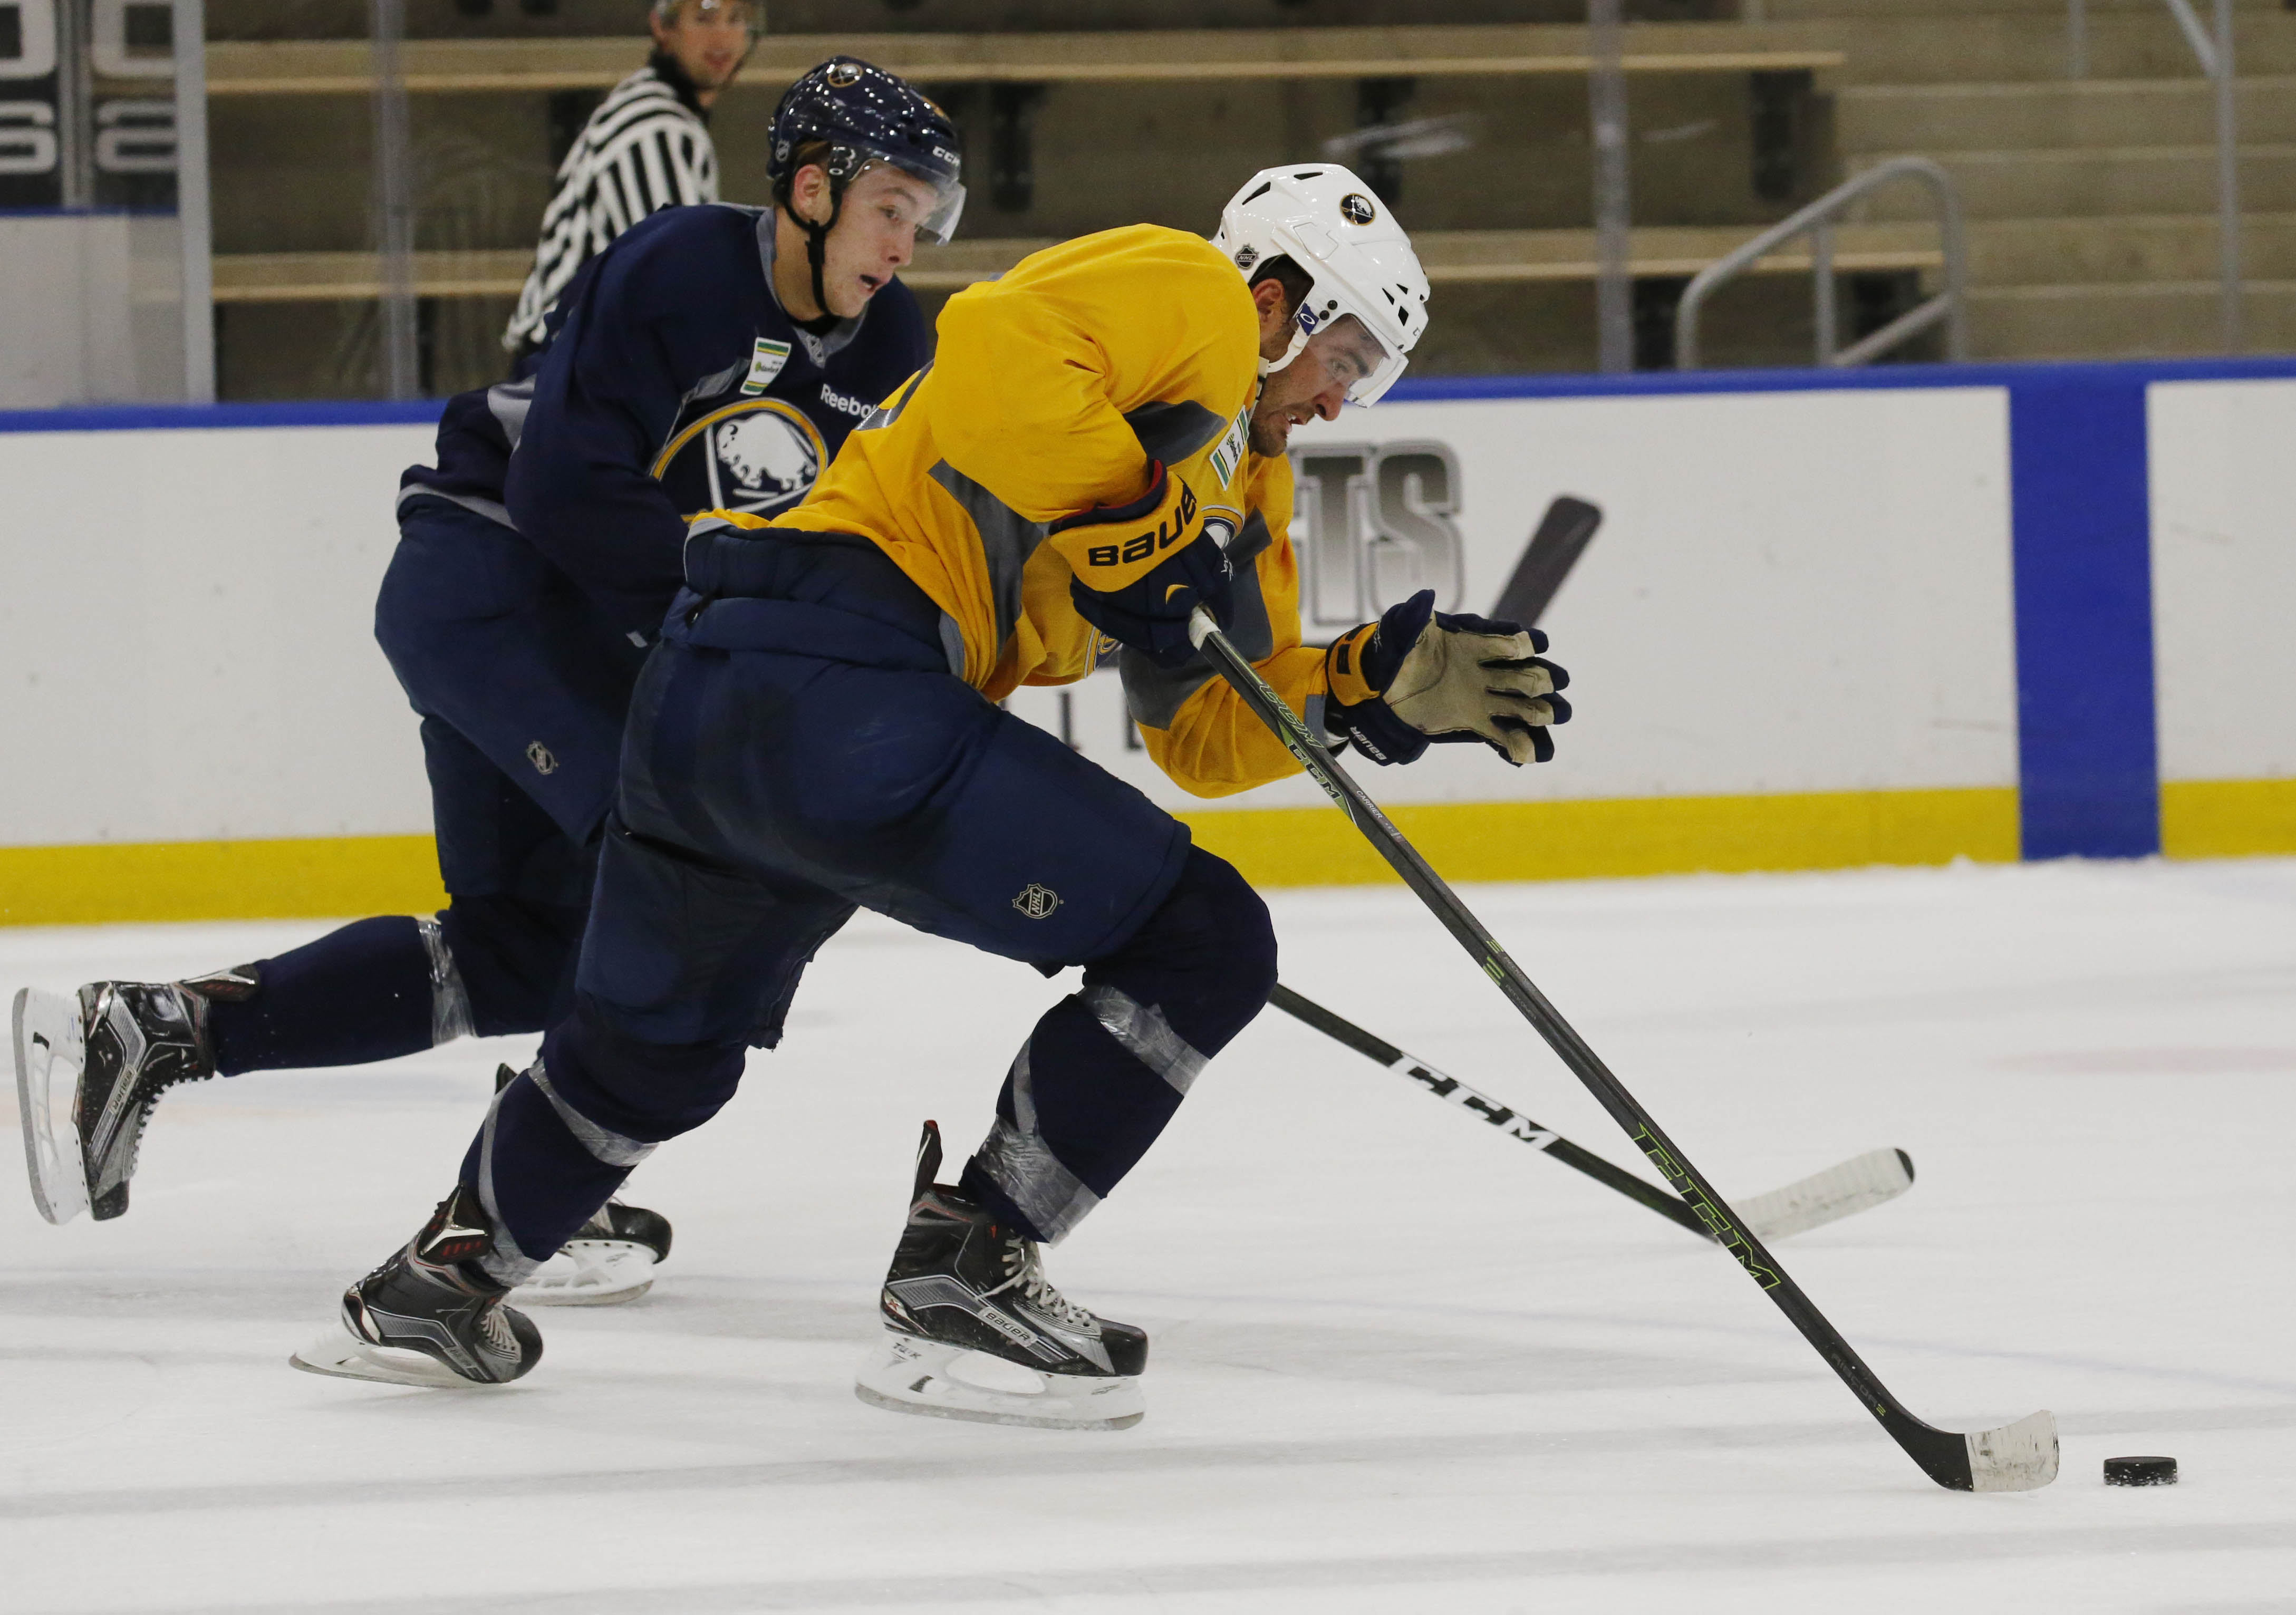 Austin Osmanski (blue) was one of the Sabres' six cuts Monday. William Carrier, gold, is still with the team.  (Derek Gee/Buffalo News)